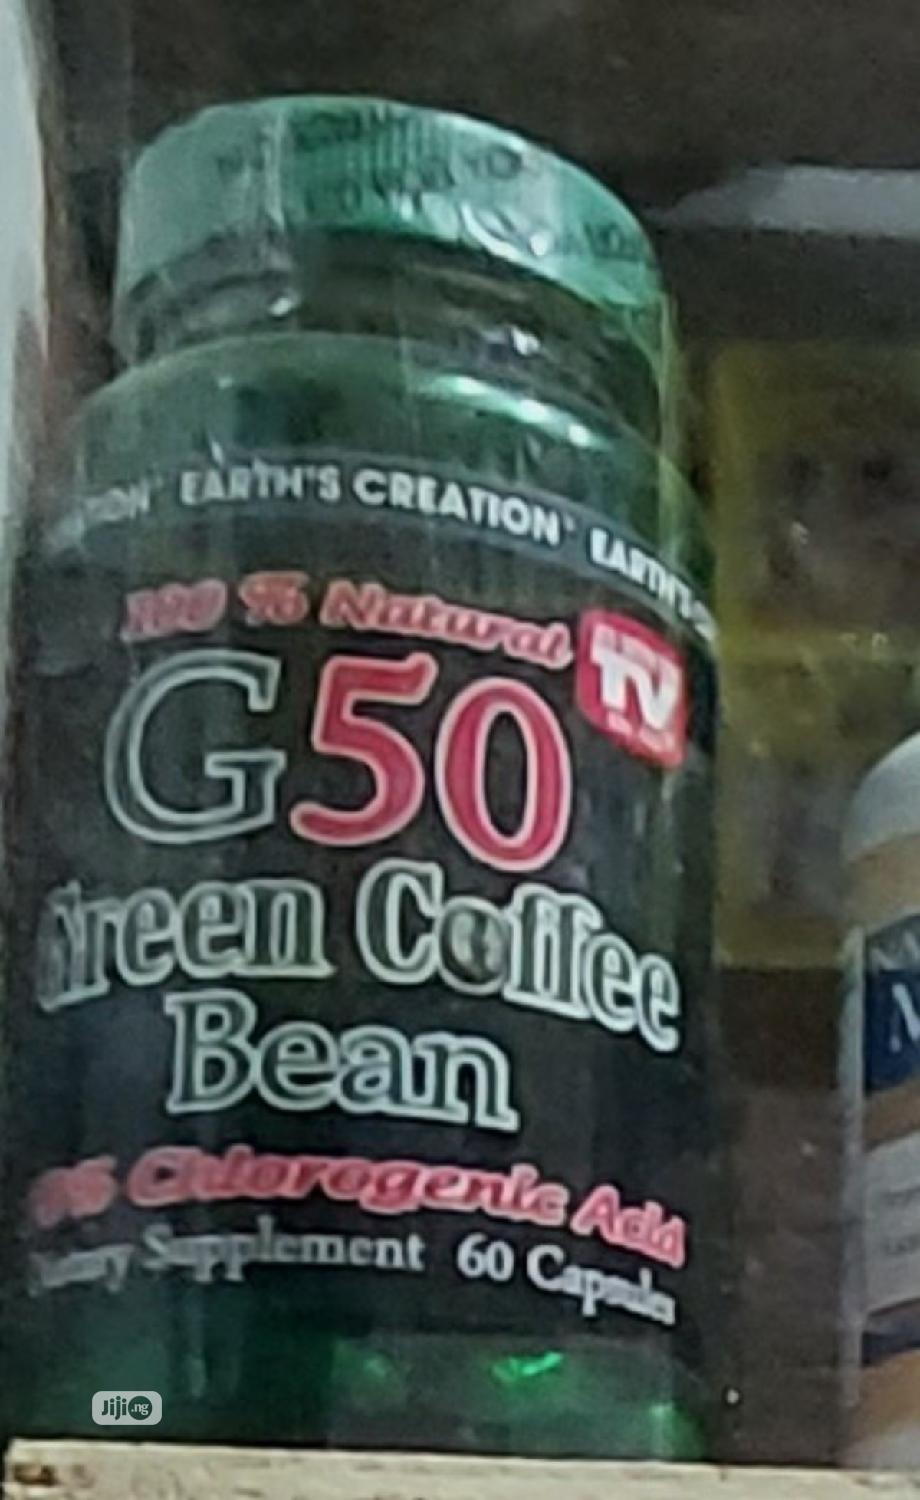 Earth Creation Green Coffee Bean Extract (60 Tablet